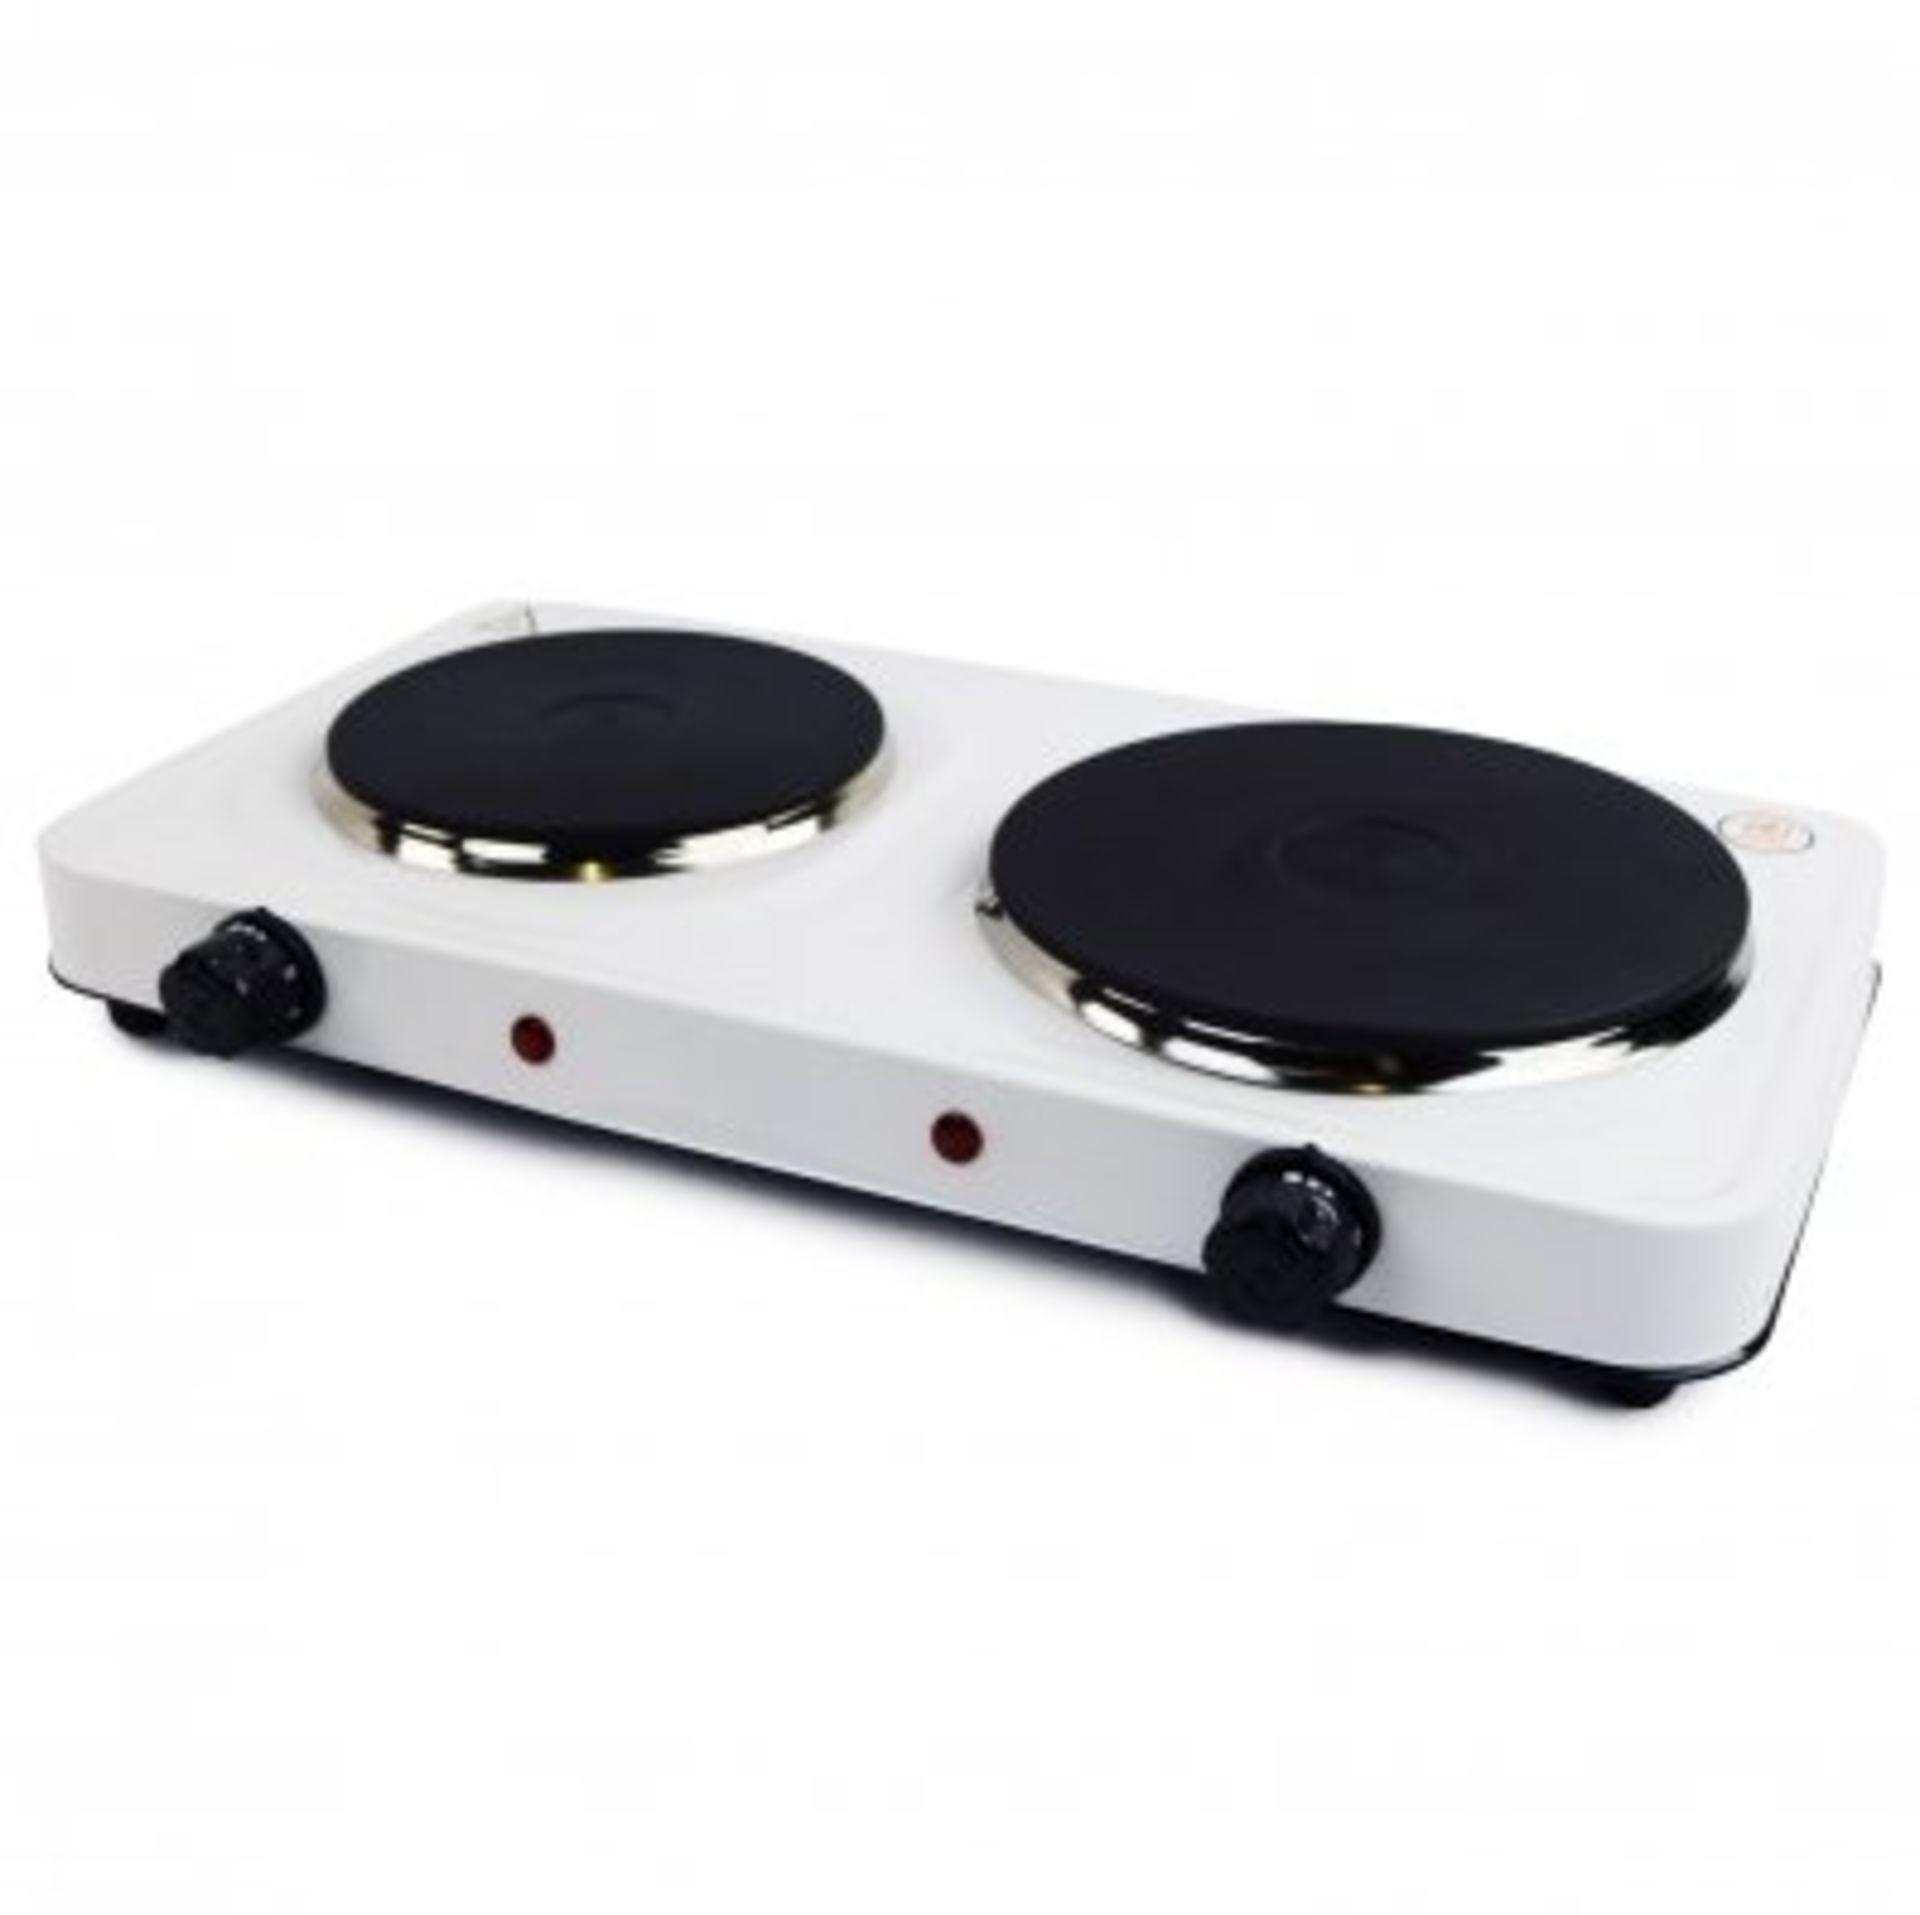 Lot 22 - (RU15) 2.5Kw Electric Portable Kitchen Double Hot Plate The 2.5kW electric hot plate is an e...